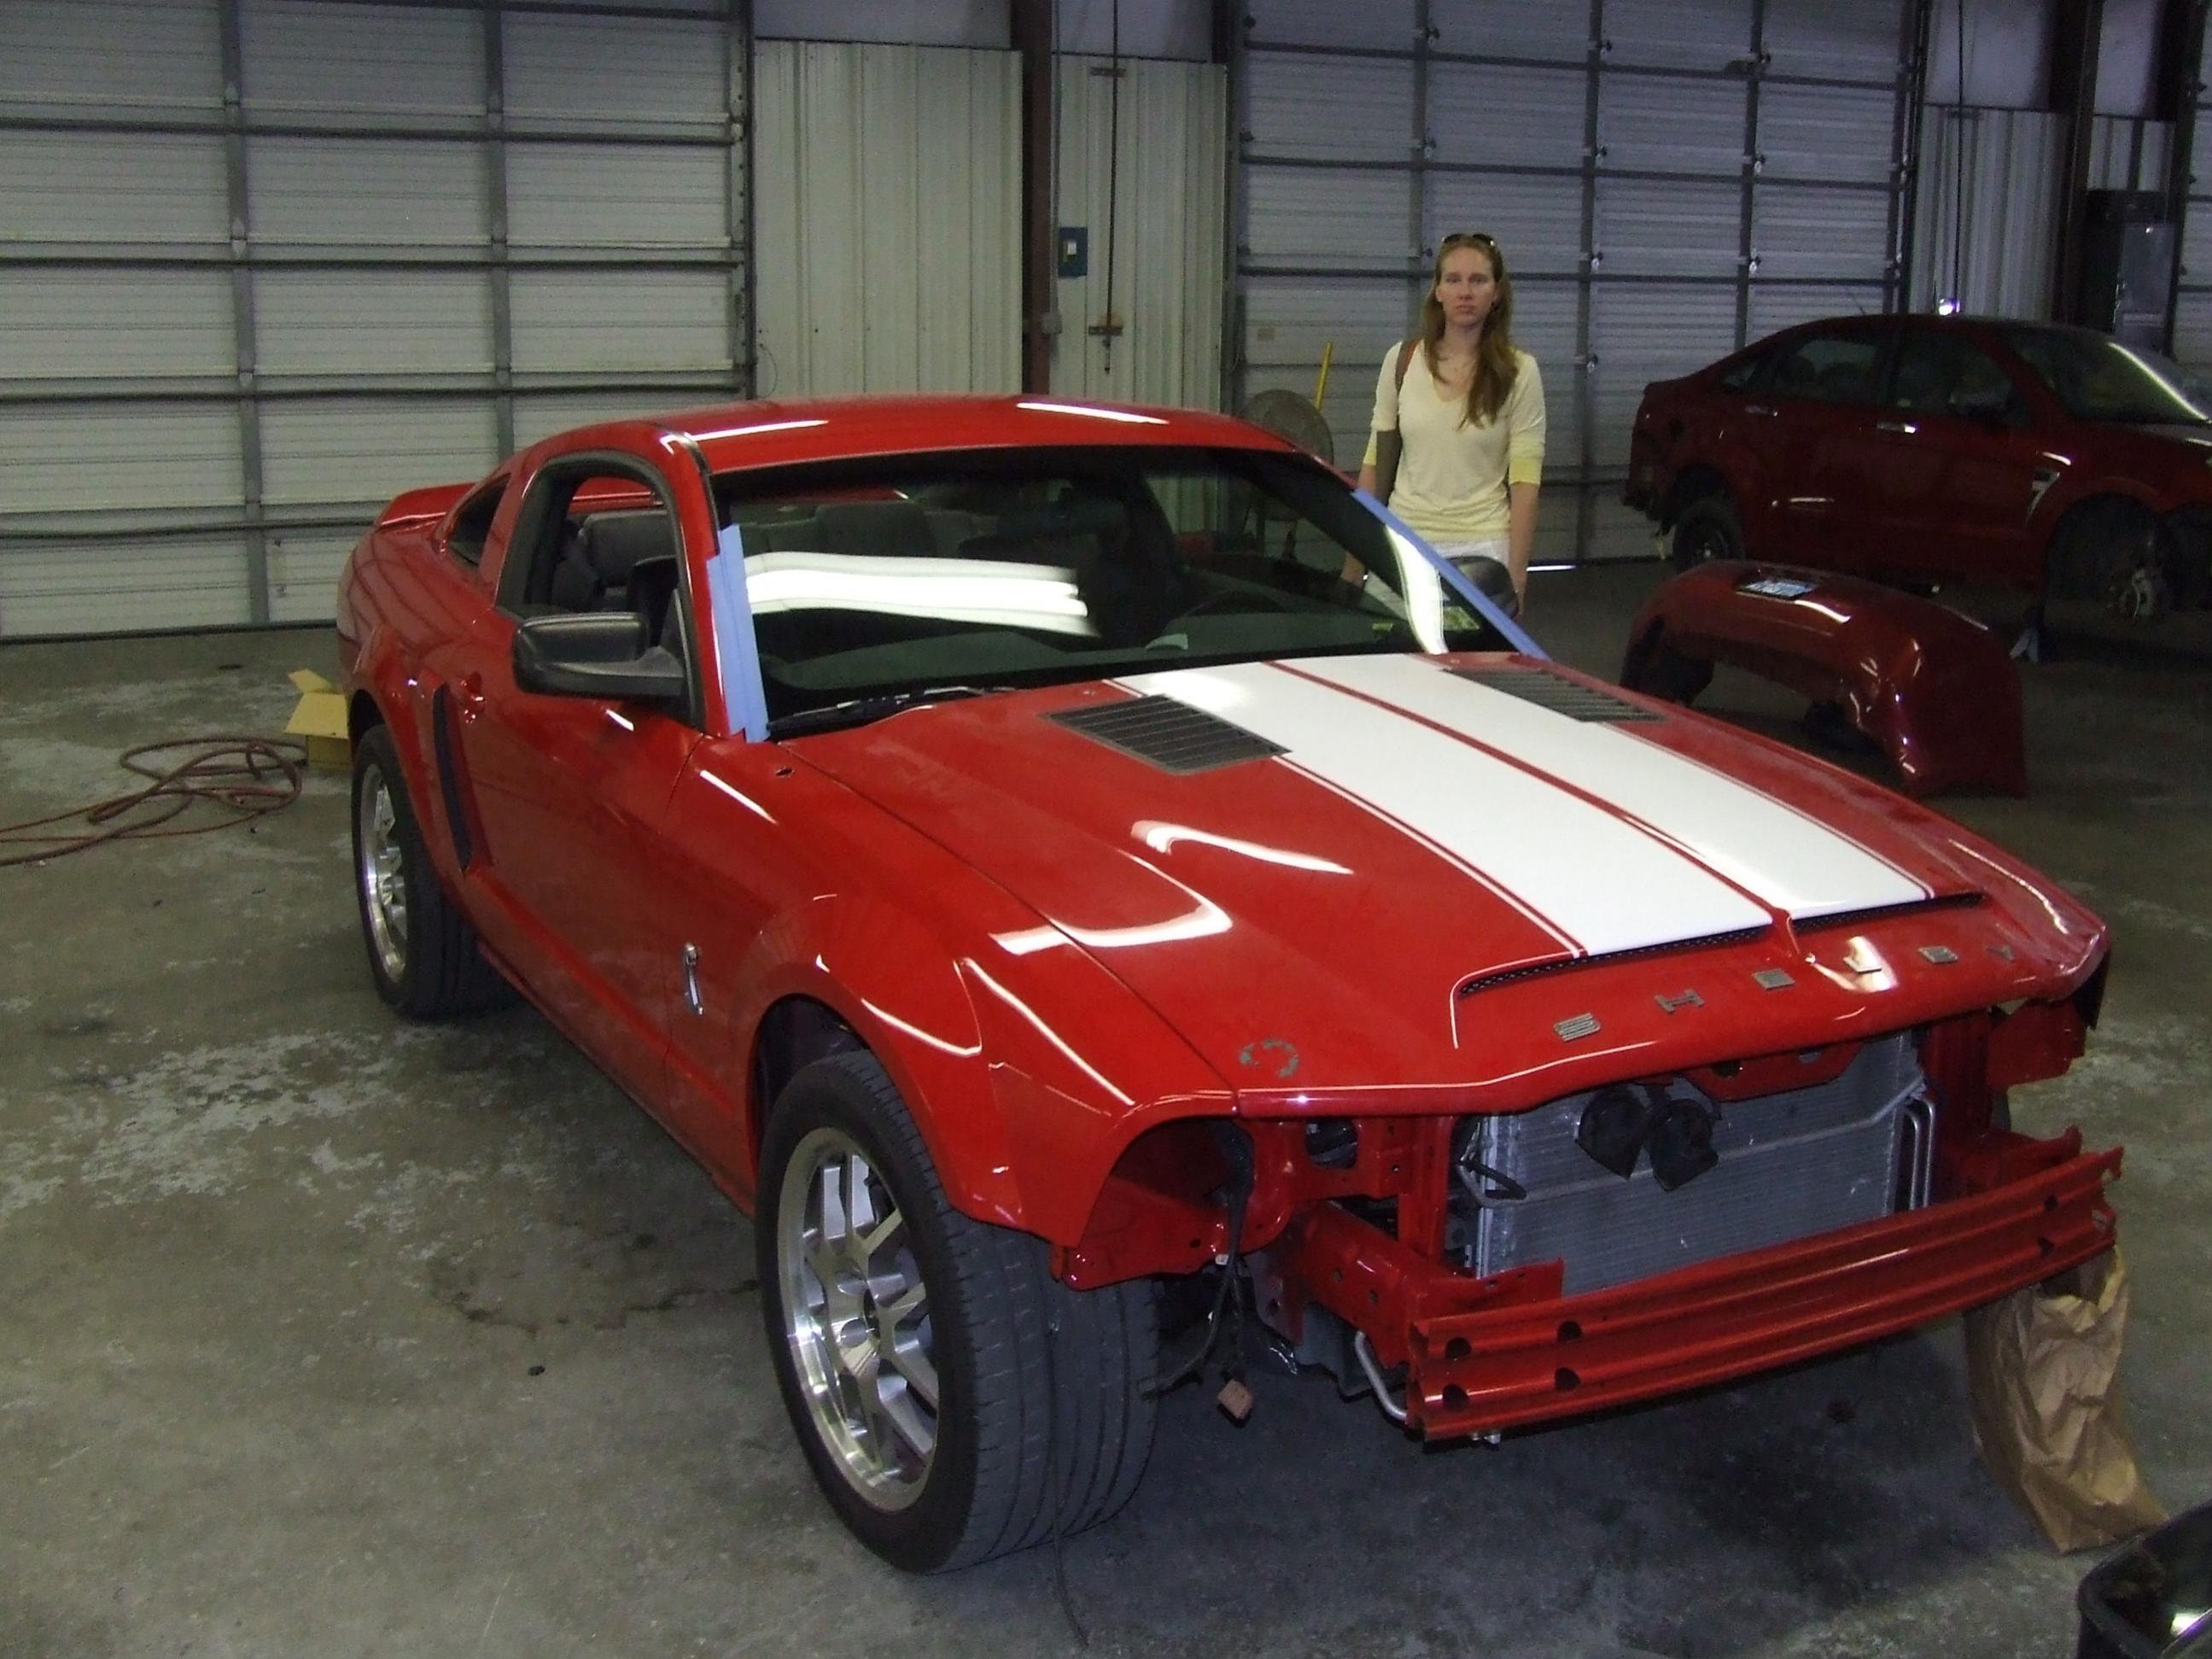 2008 mustang gt body shop has option to paint my racing. Black Bedroom Furniture Sets. Home Design Ideas